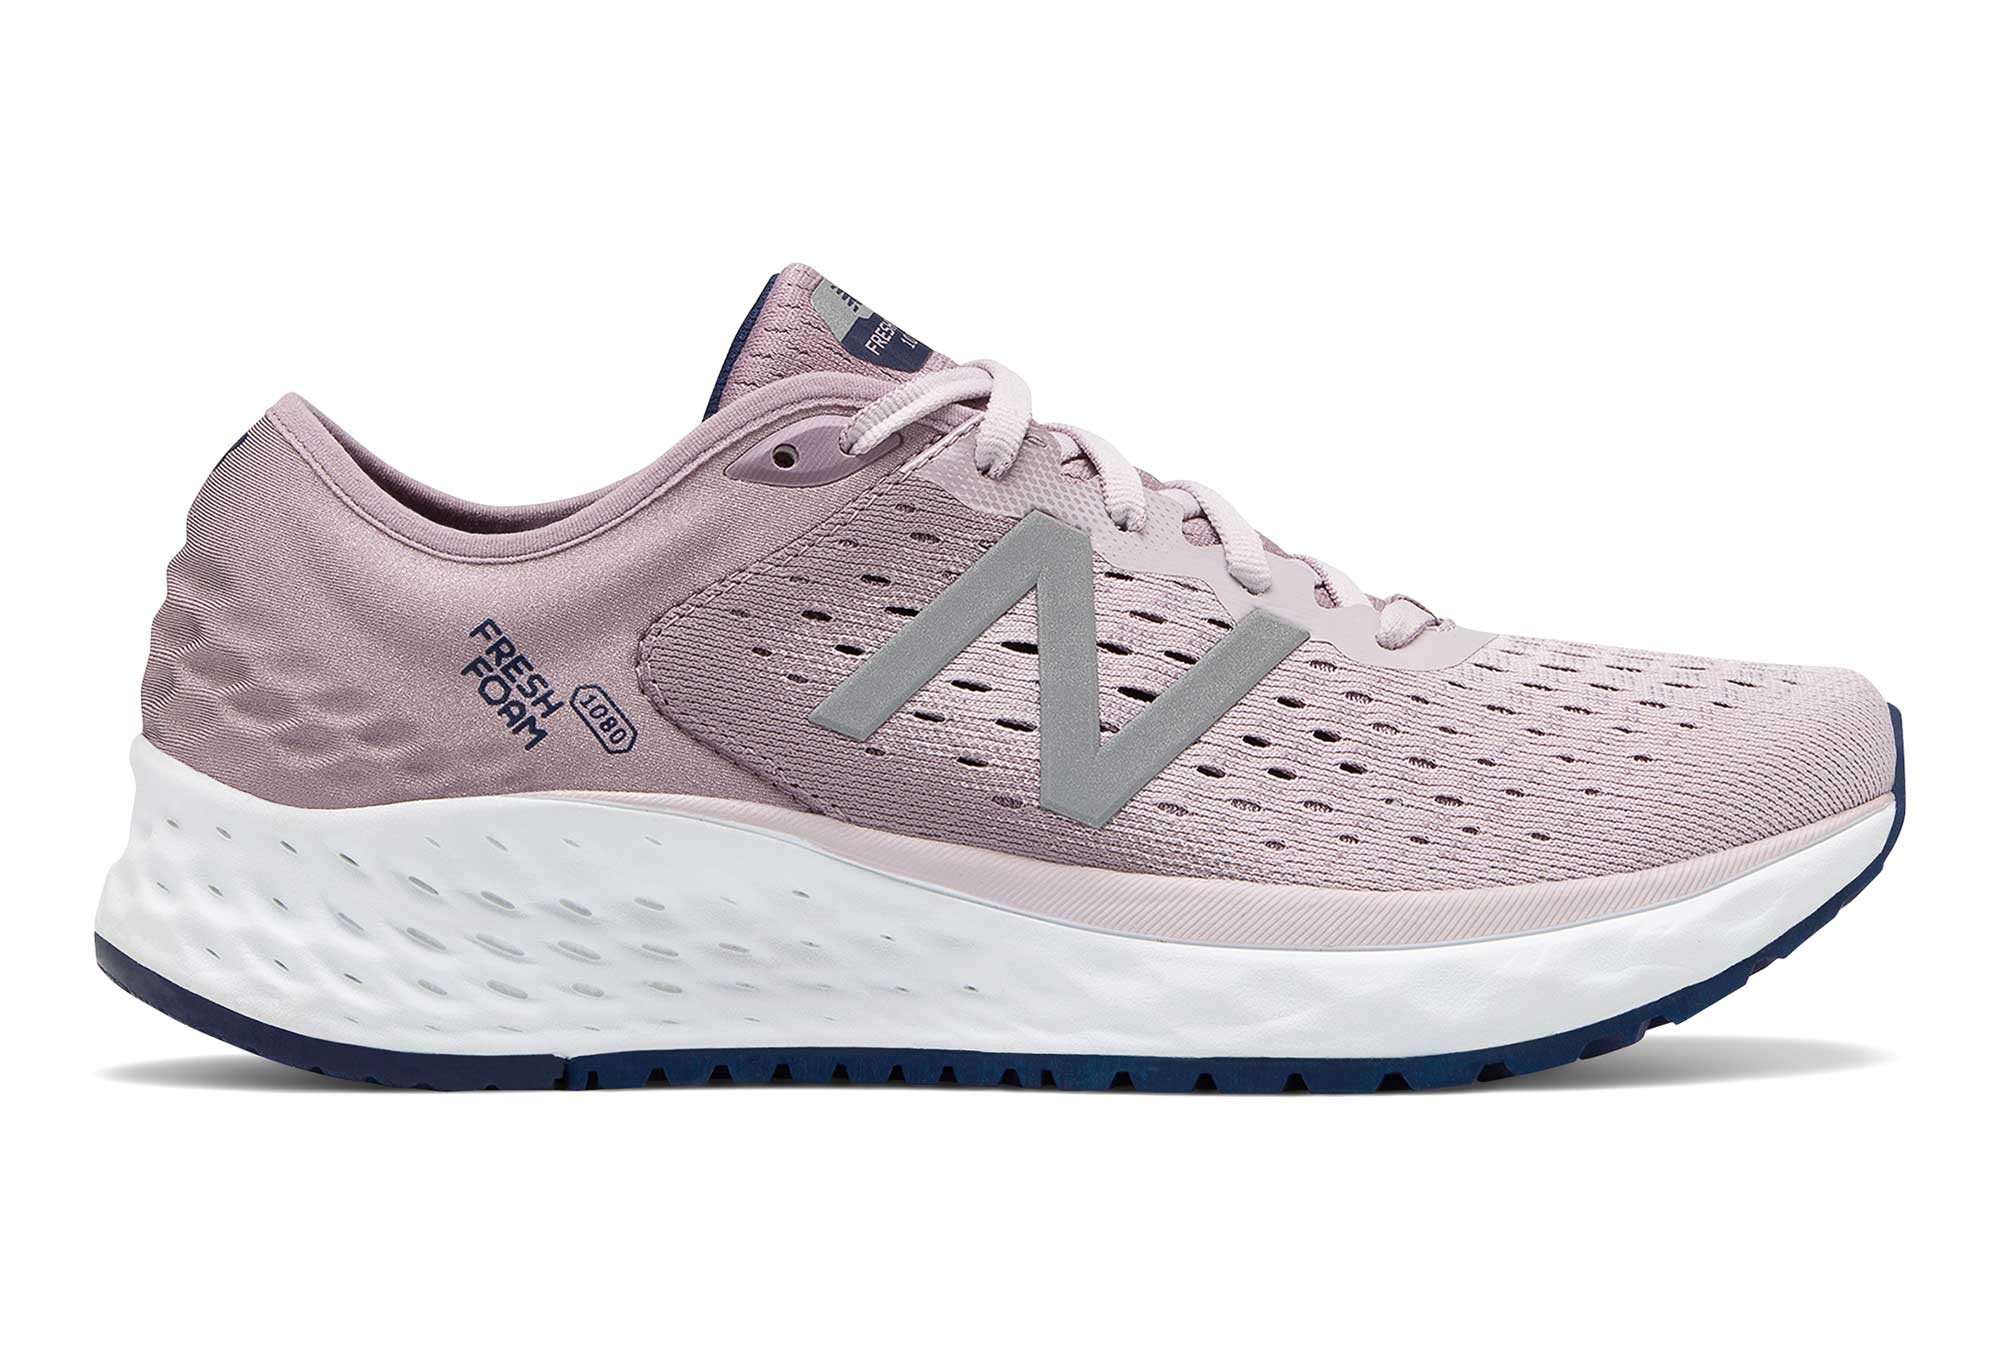 New Balance Fresh Foam 1080 V9 Pink Women